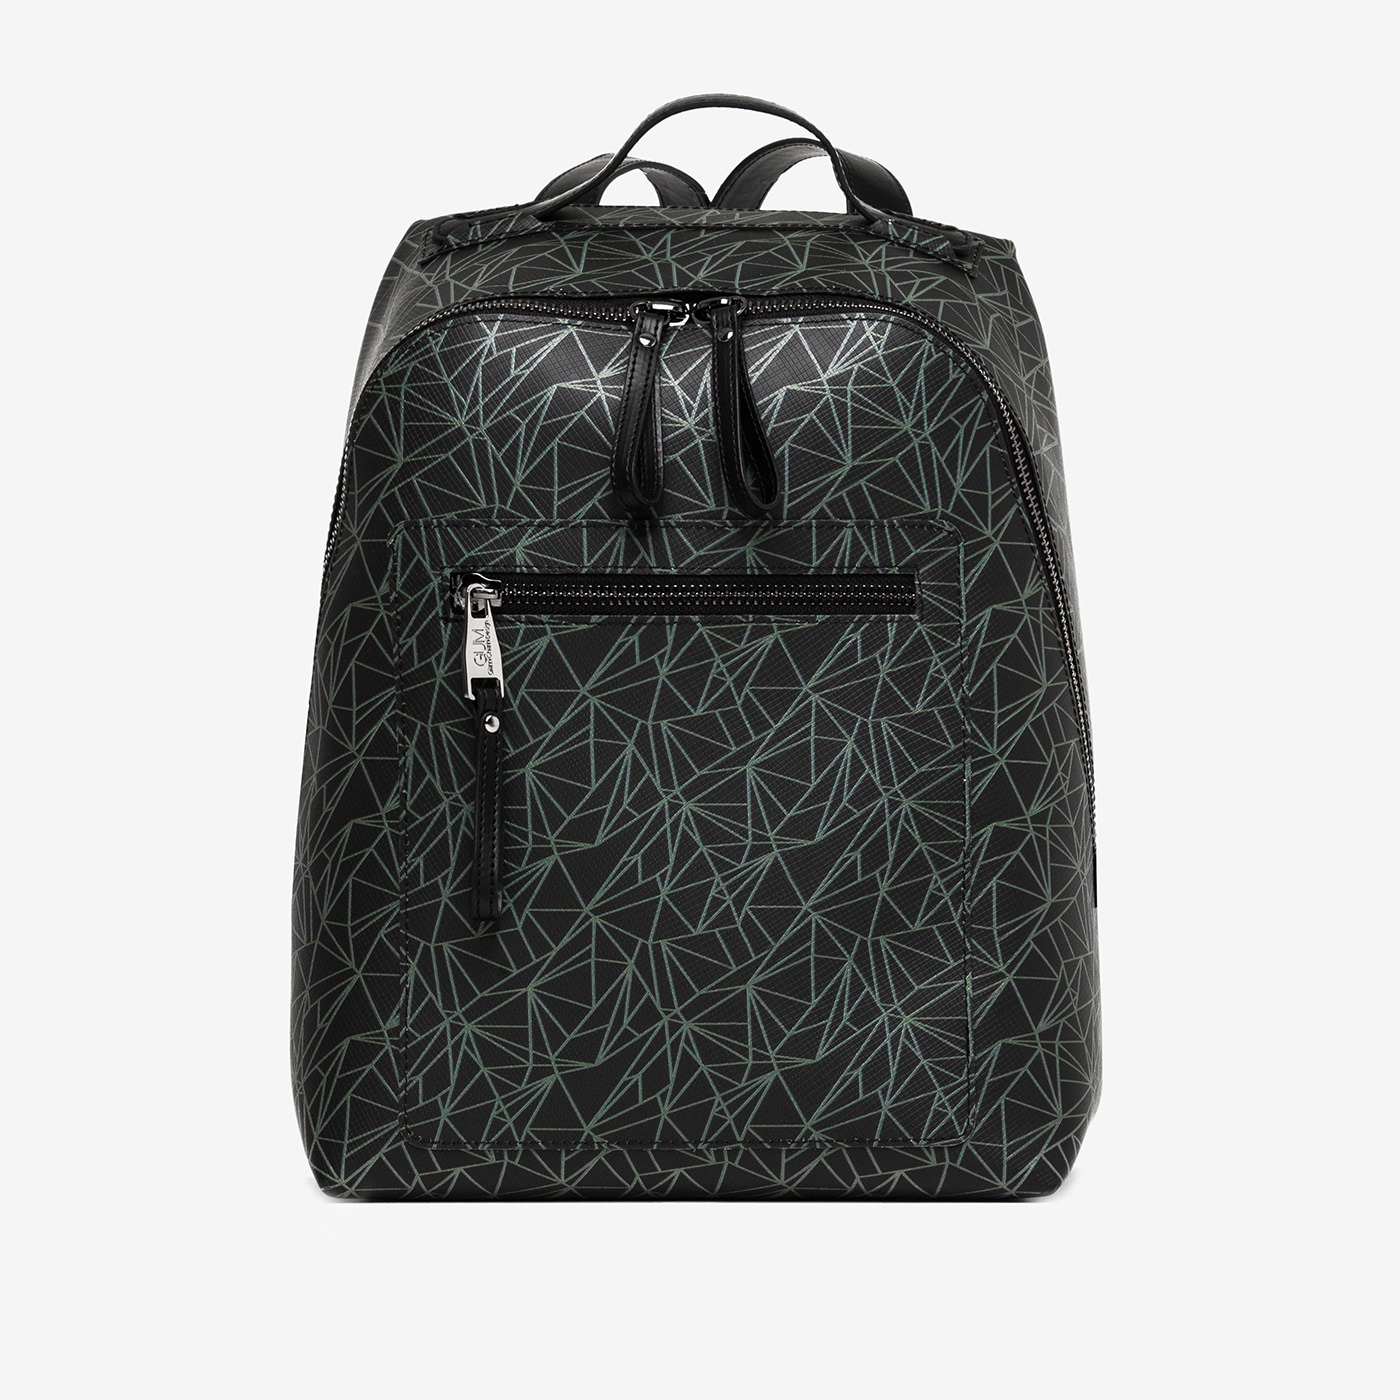 GUM: CRUSH PATTERN BACKPACK